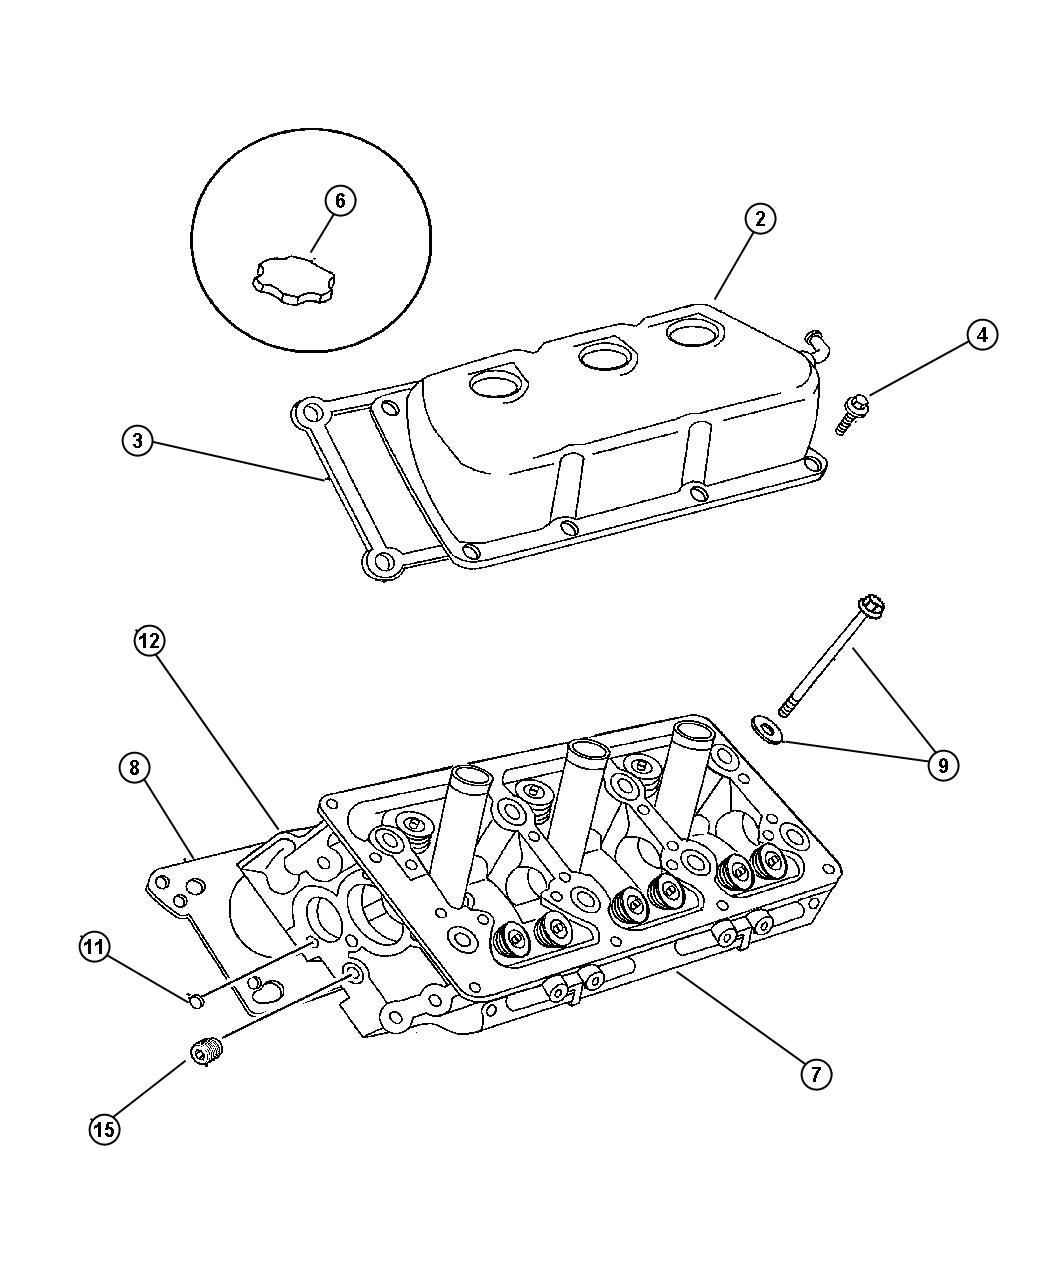 1996 ford ranger emissions control schematic further 97 geo metro radio wiring furthermore fordex furthermore 95